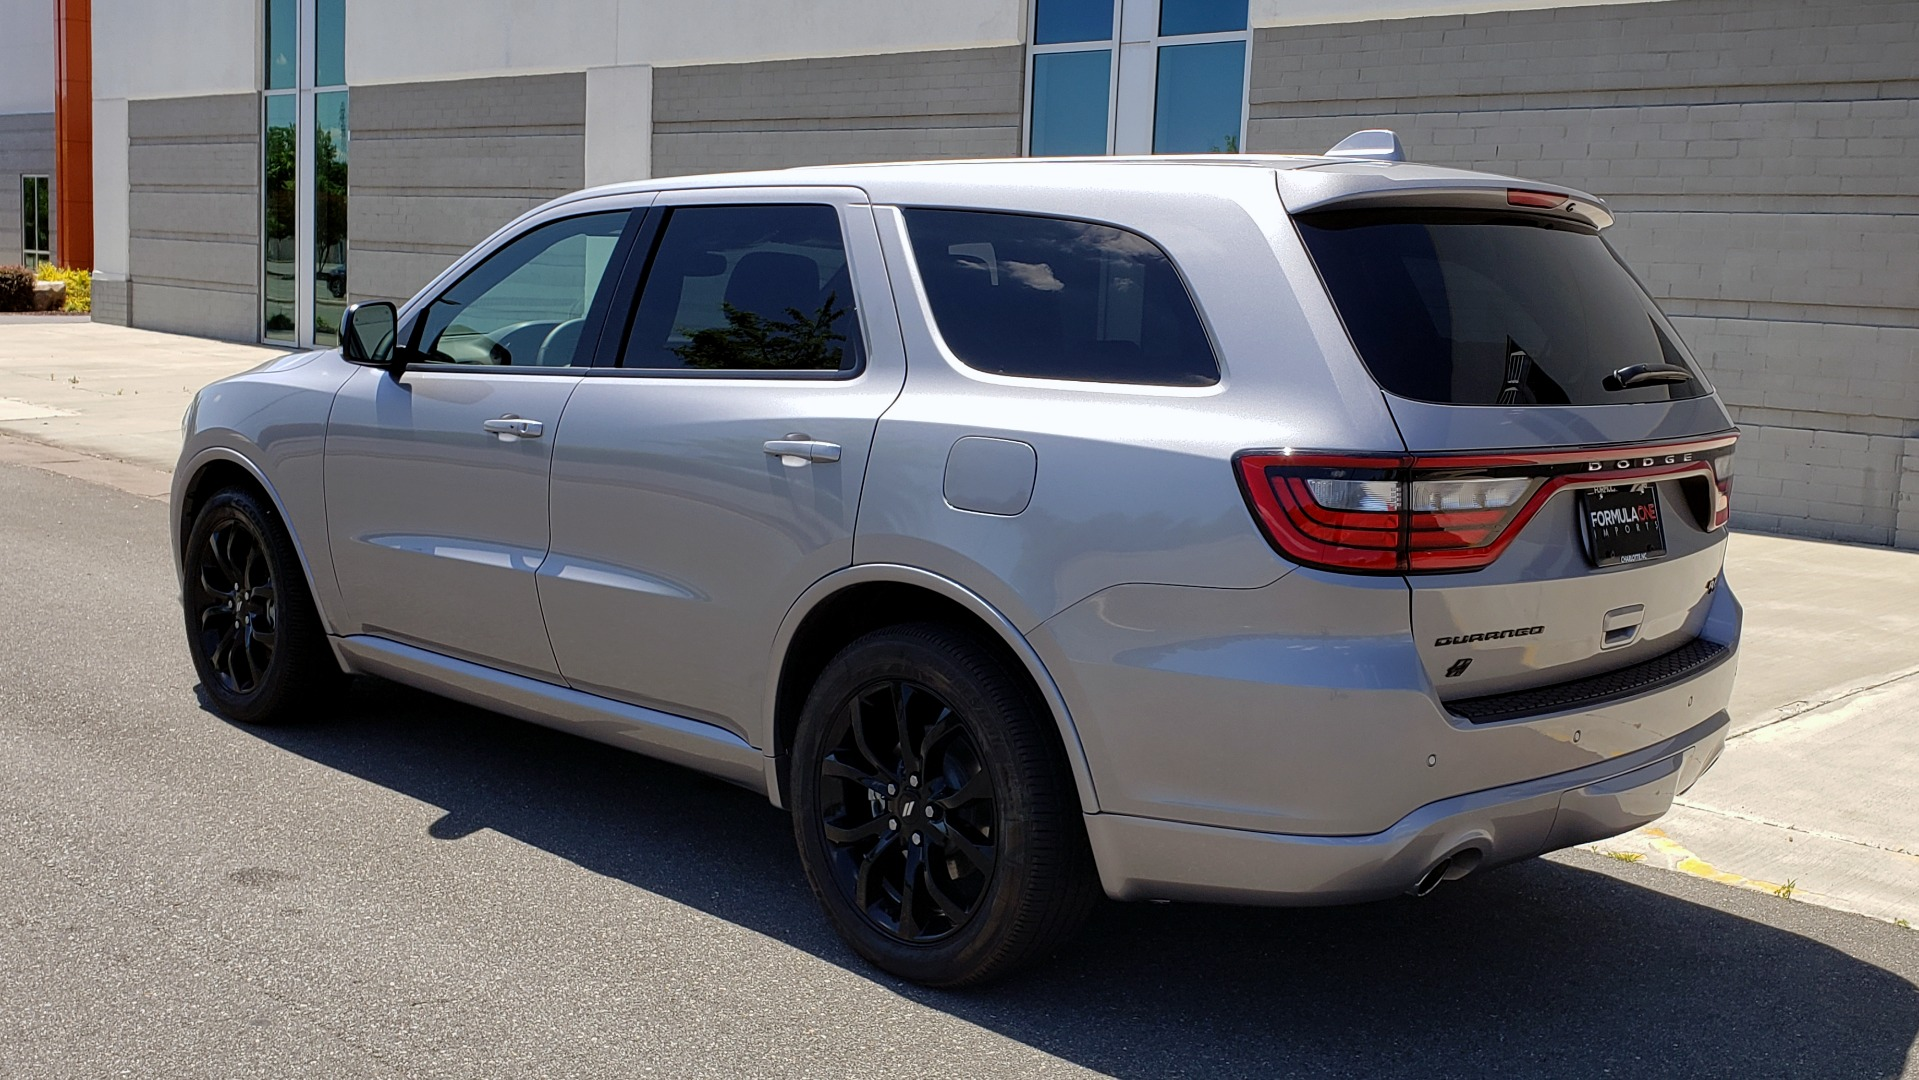 Used 2019 Dodge DURANGO R/T BLACKTOP AWD / TECH / ADAPT CRUS / TOW GROUP / SUNROOF / REARVIEW for sale Sold at Formula Imports in Charlotte NC 28227 7